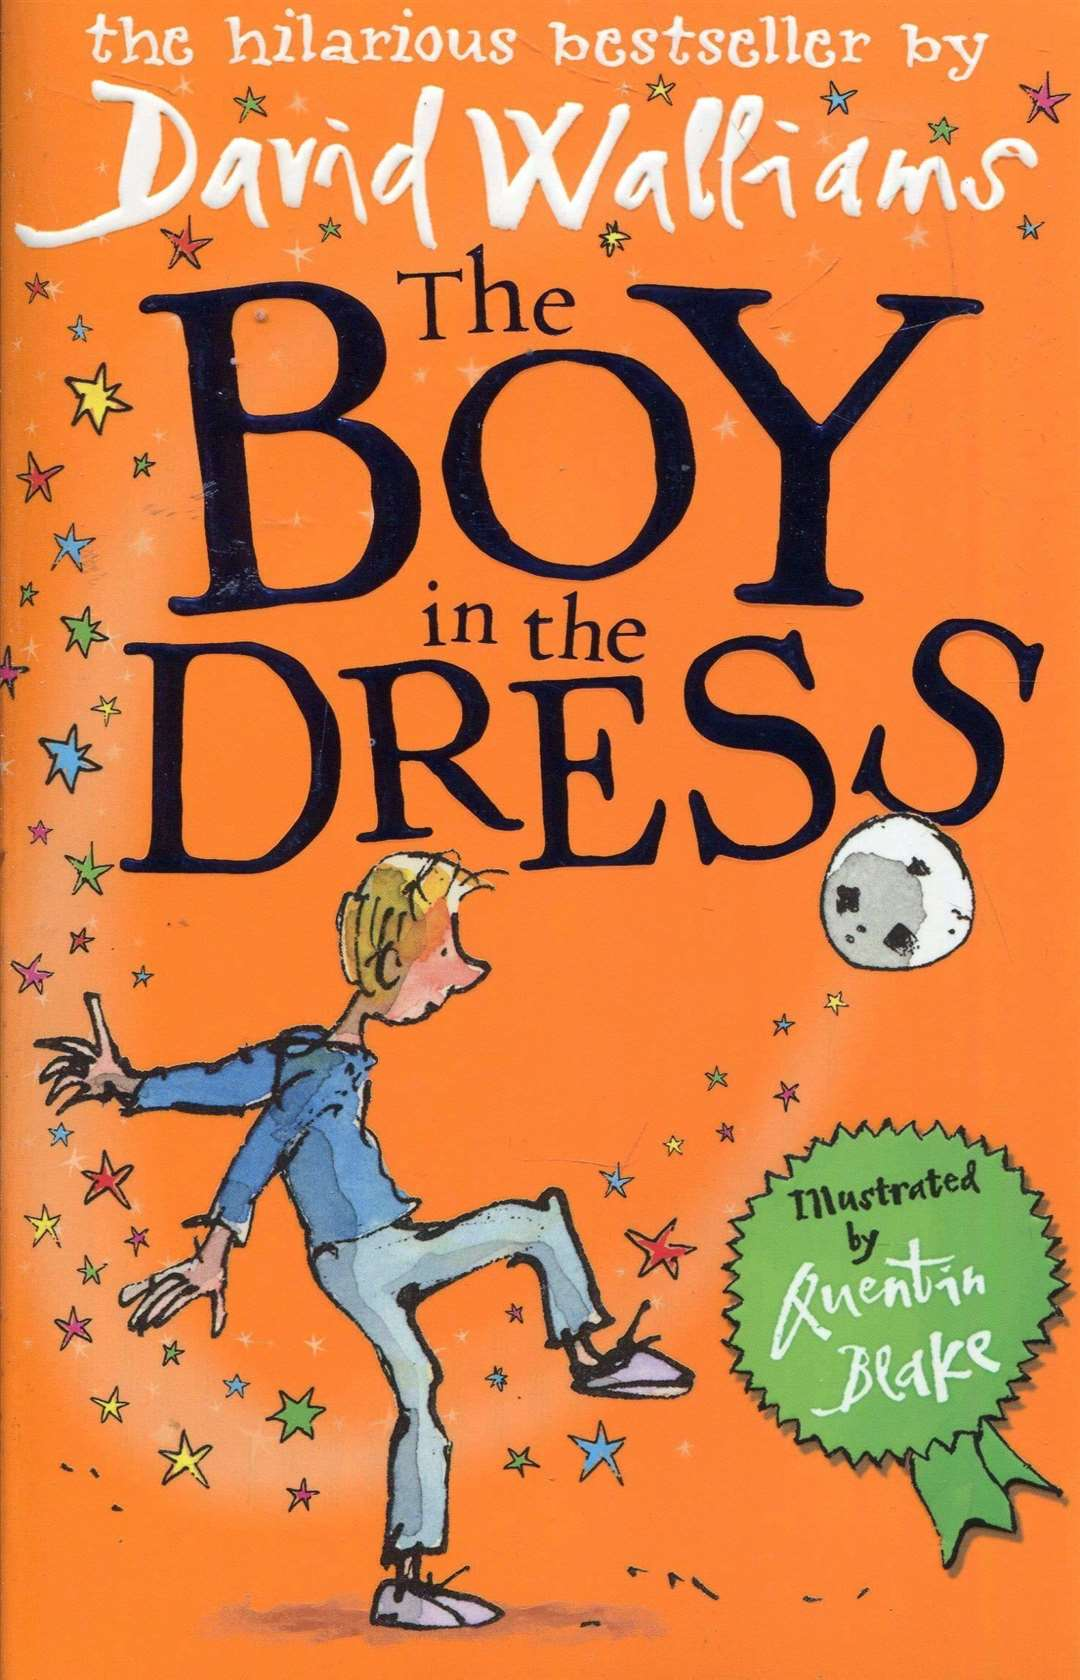 The Boy in the Dress by David Walliams (44164558)